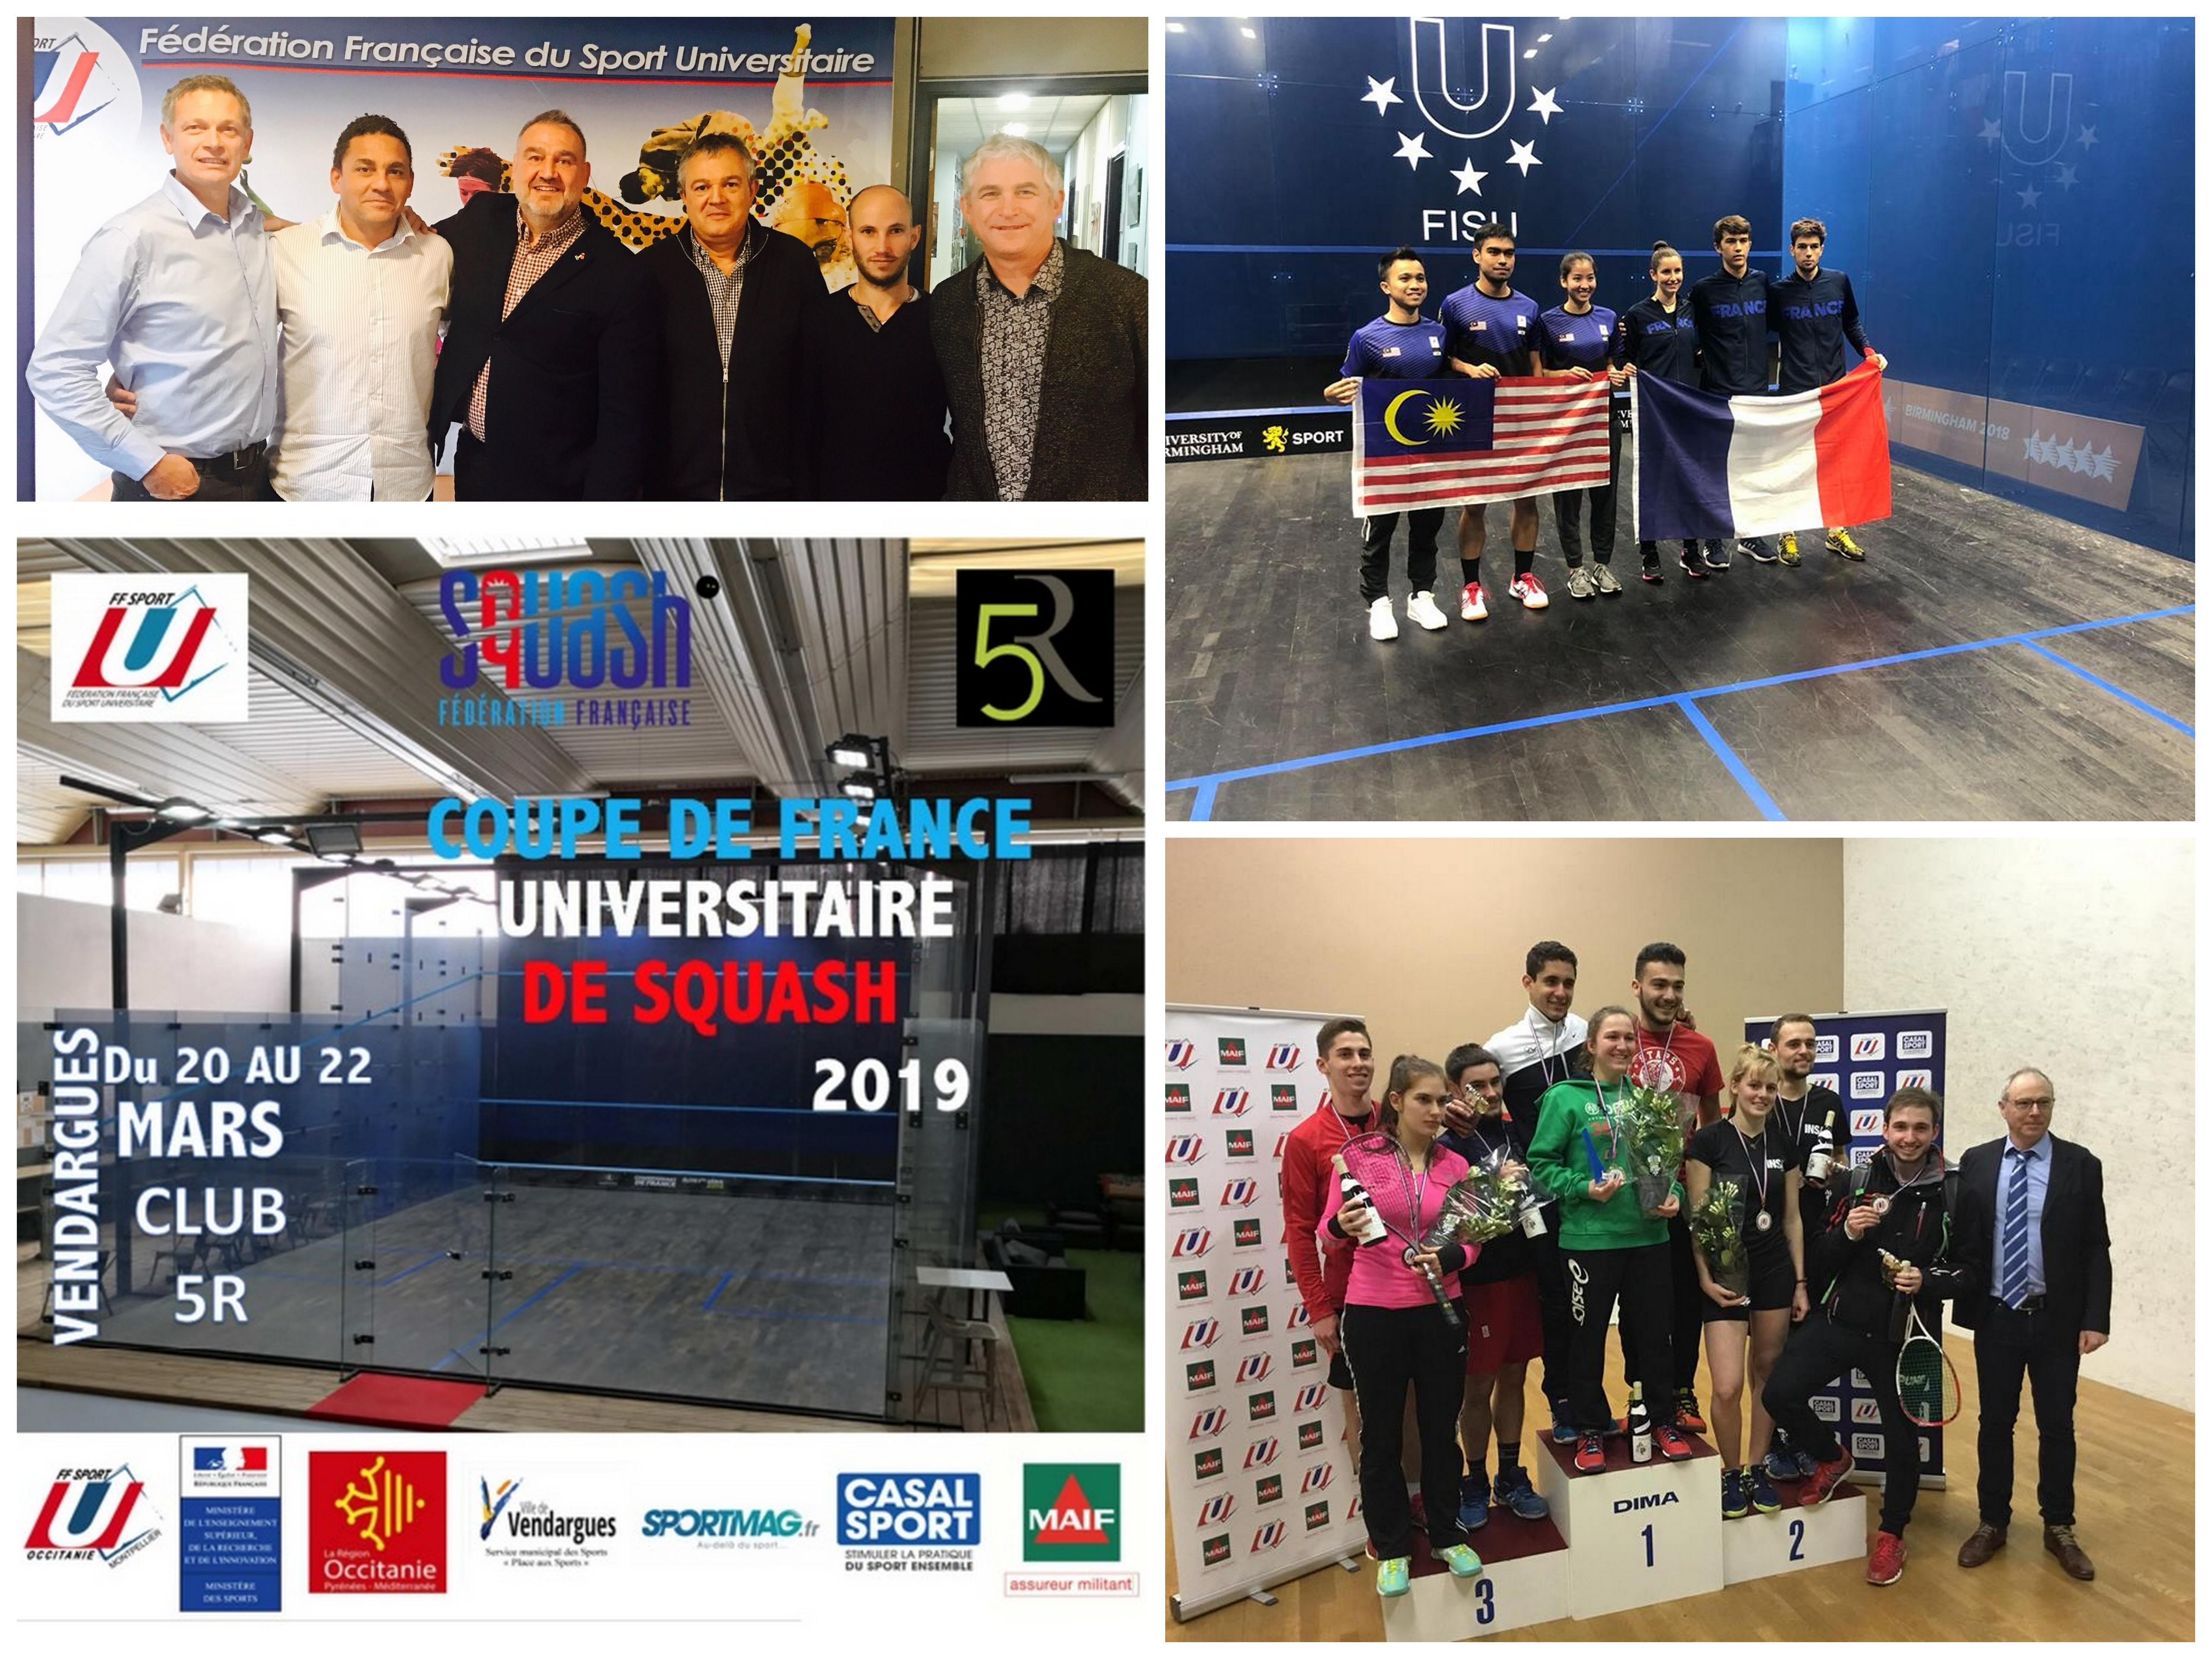 COUPE DE FRANCE FFSU : LE SQUASH UNIVERSITAIRE À L'ÉTUDE